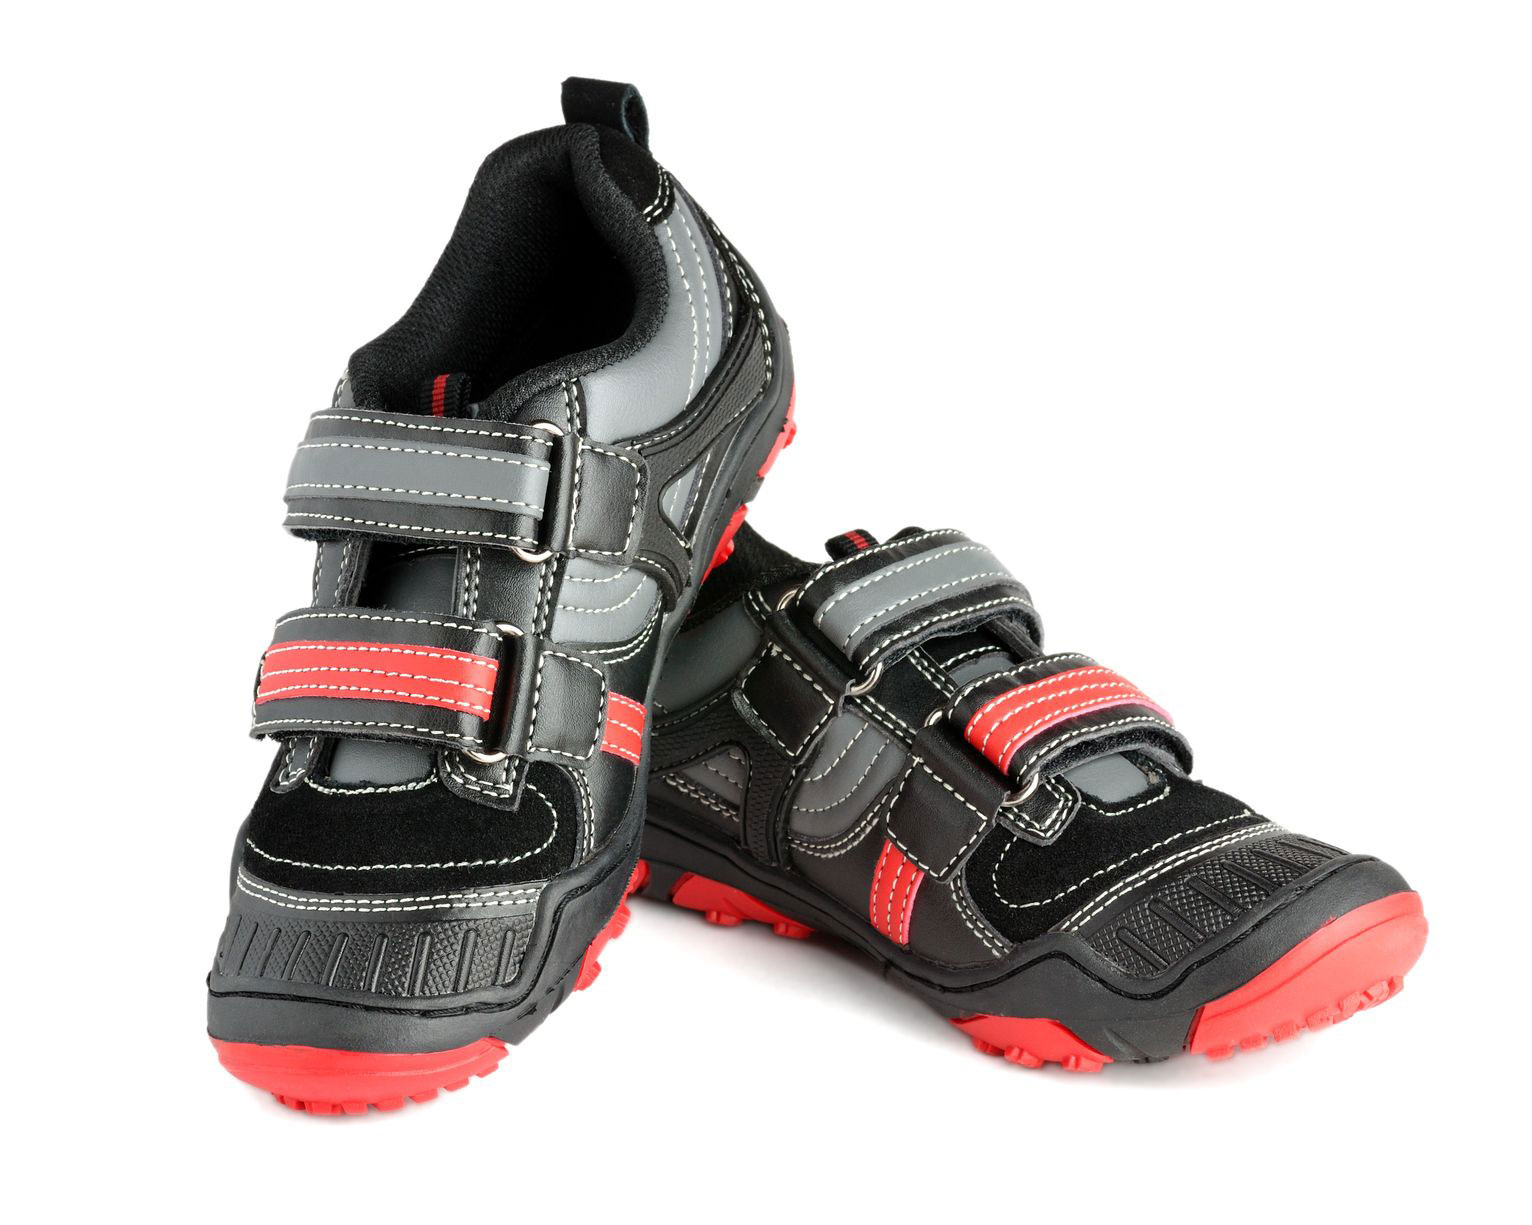 ADEDAS Boy's Sport Black/Red Shoes